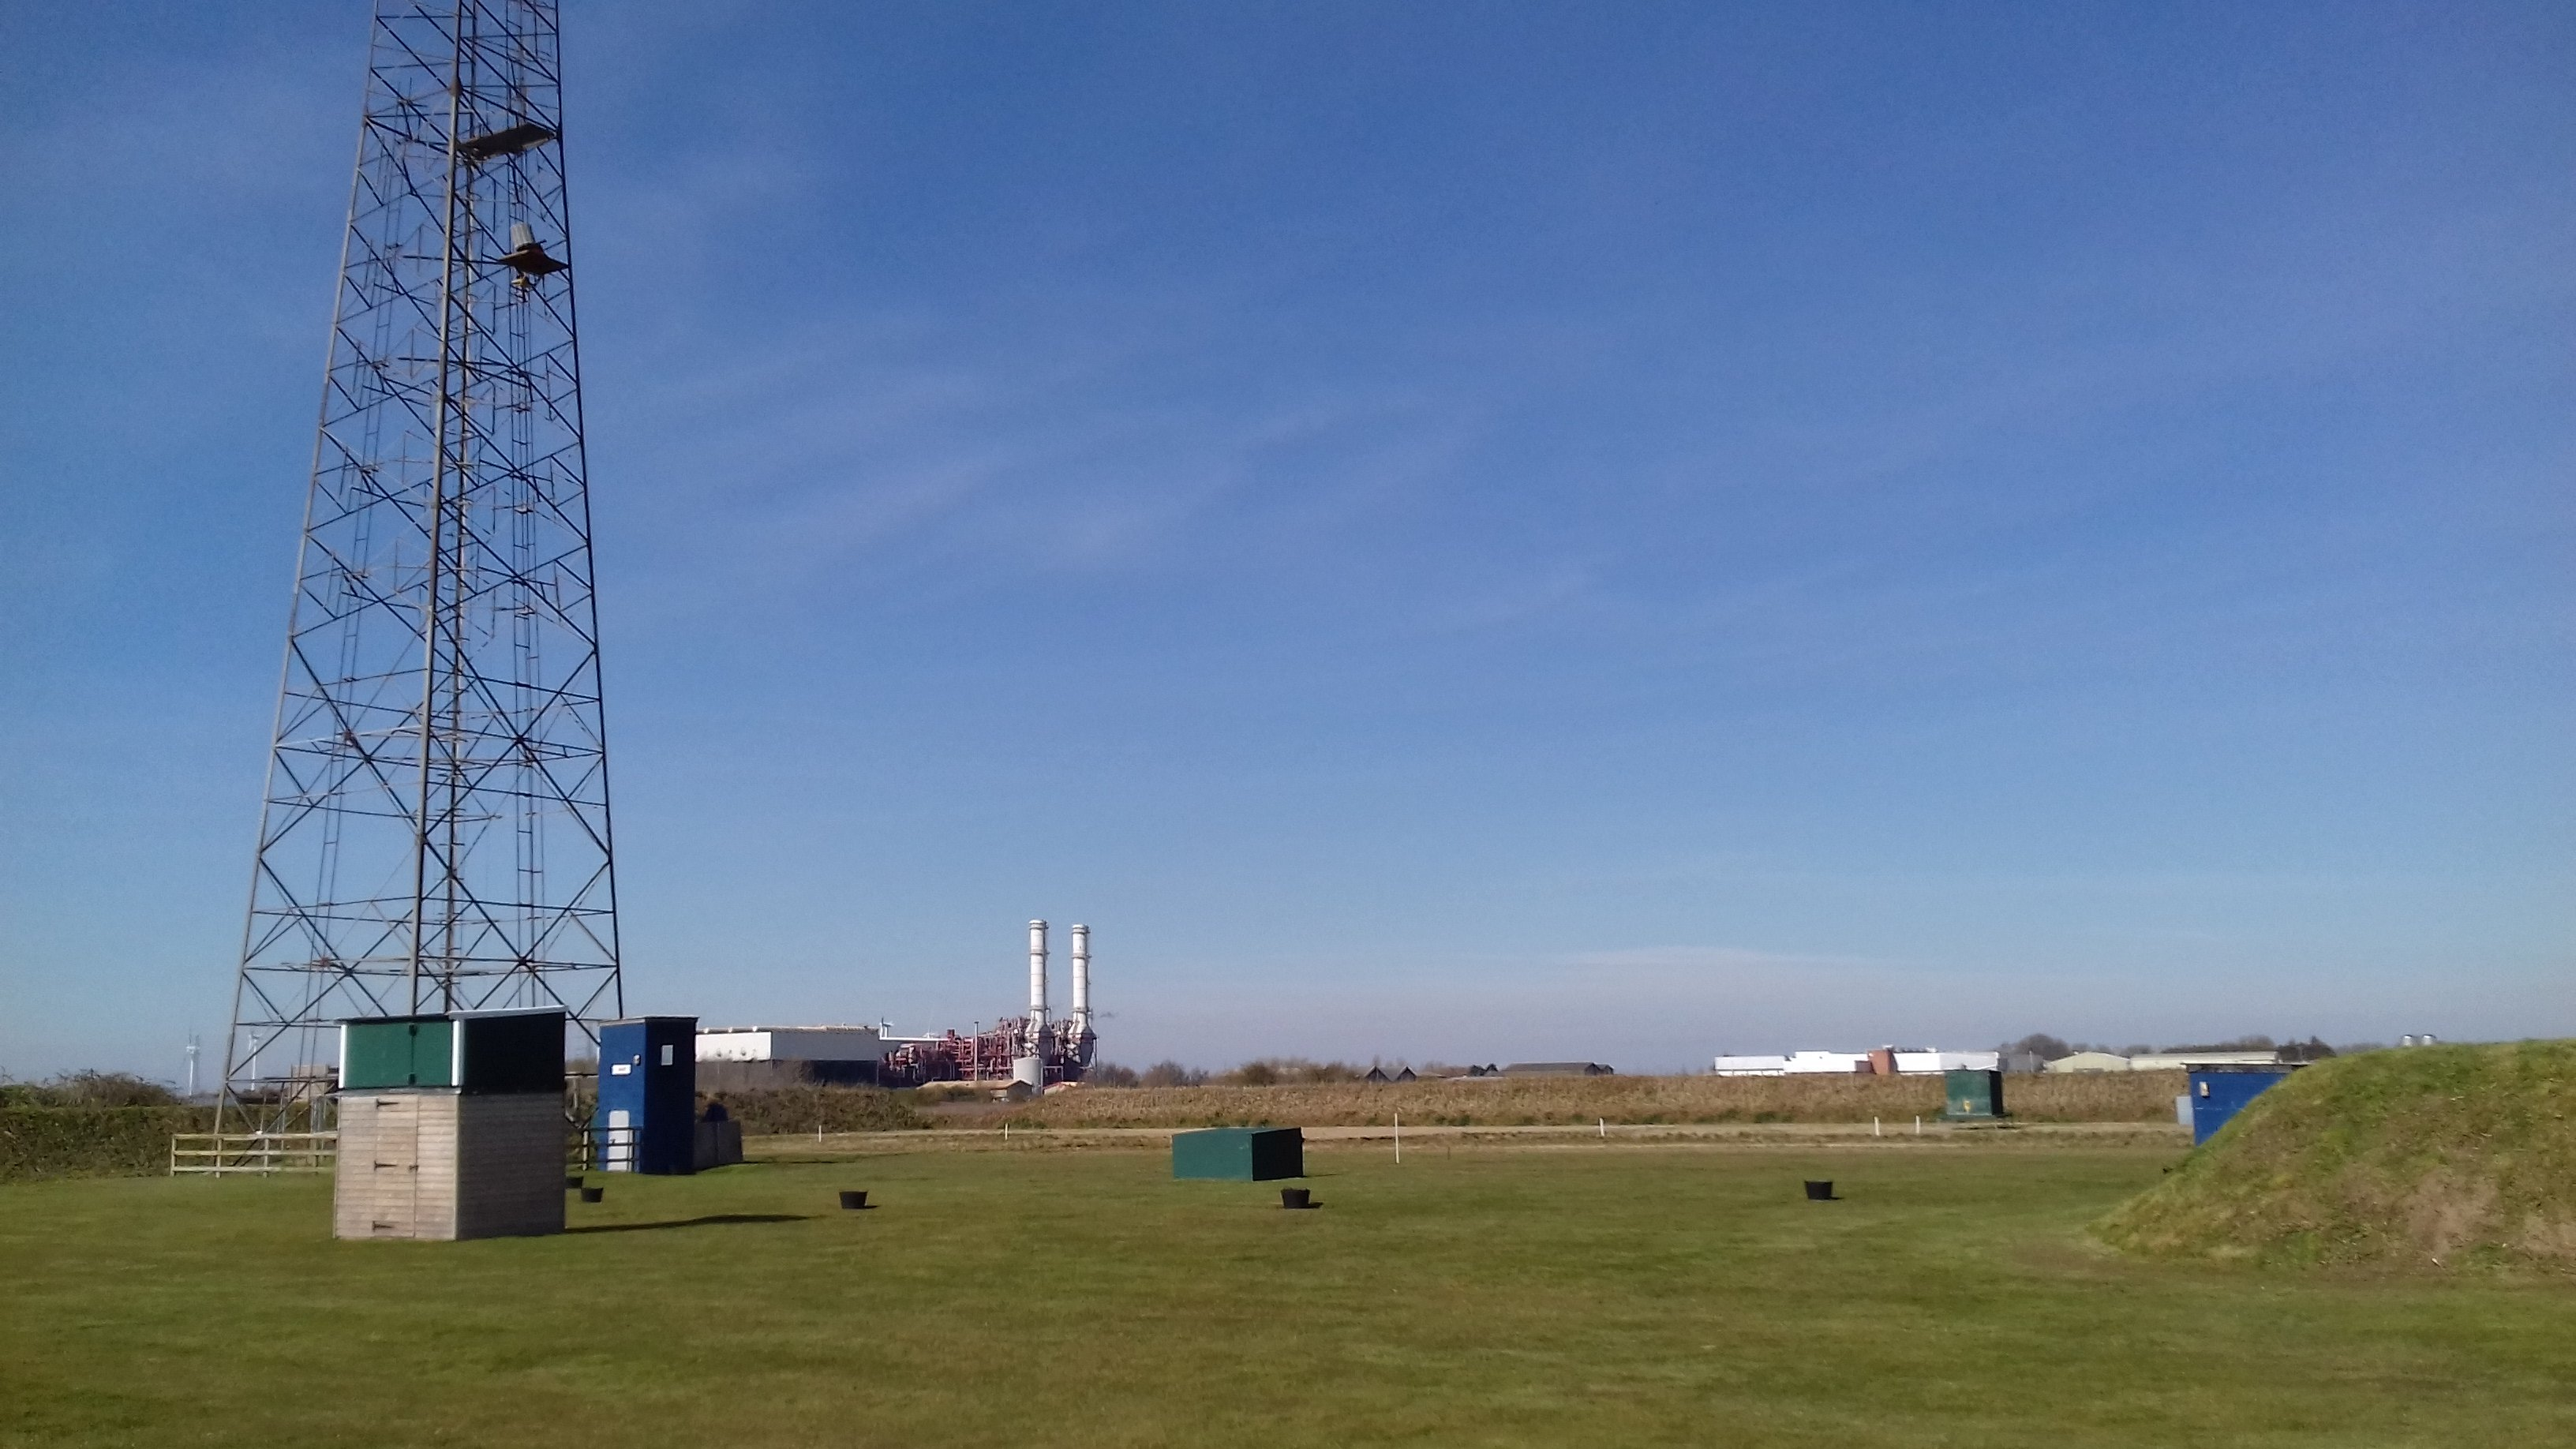 DTL 2, SKEET-OSK 1 &140ft TOWER